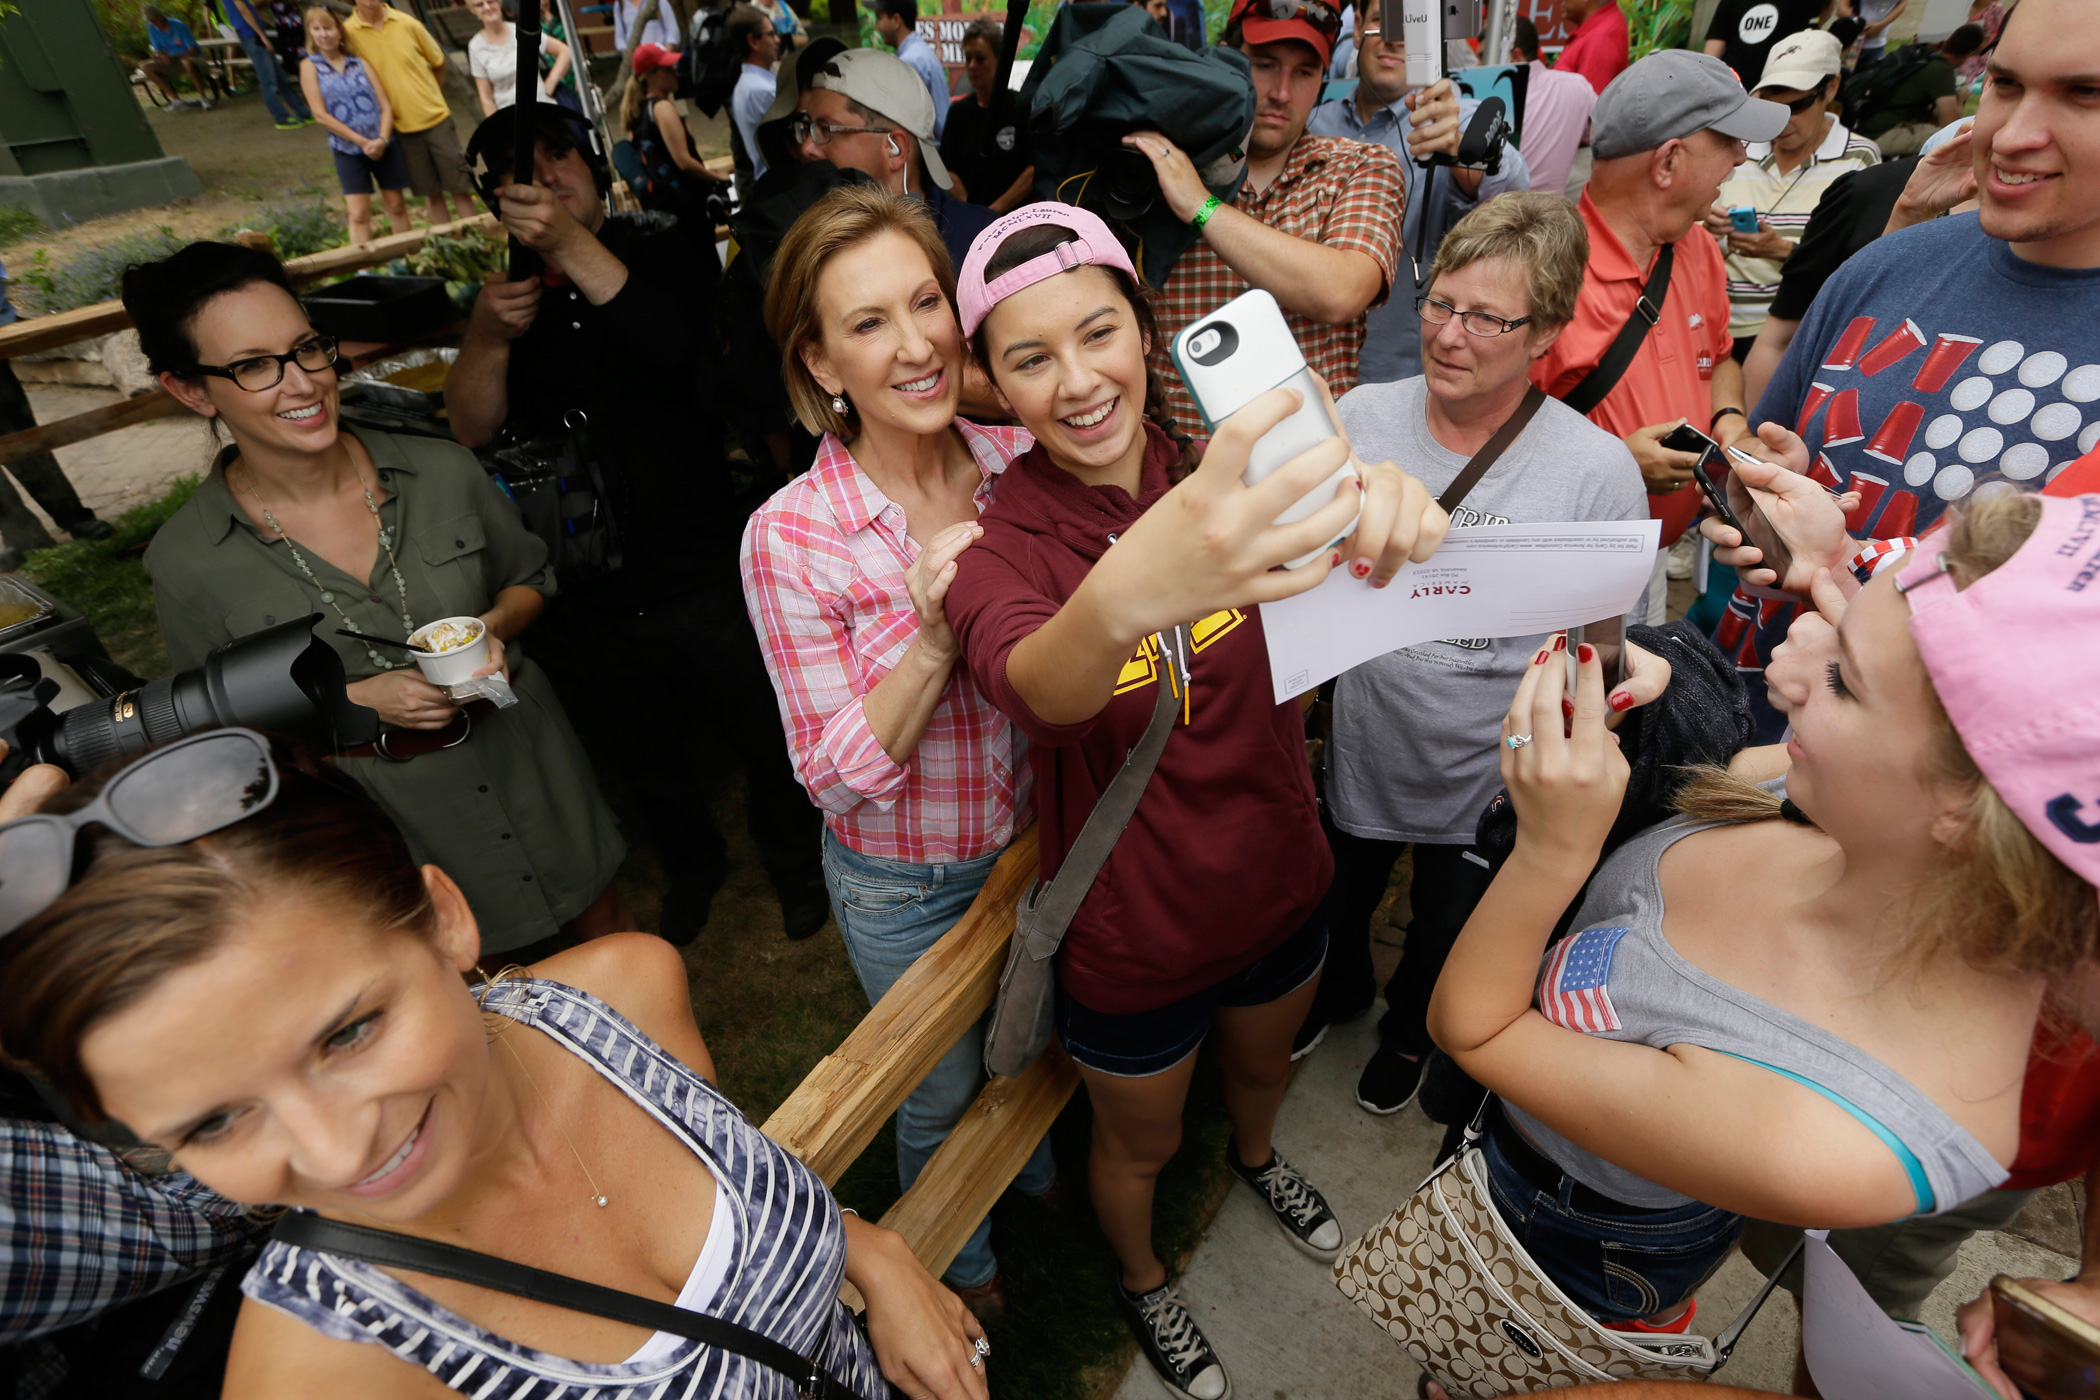 Carly Fiorina greets fairgoers during a visit to the Iowa State Fair, on Aug. 17, 2015, in Des Moines, Iowa.